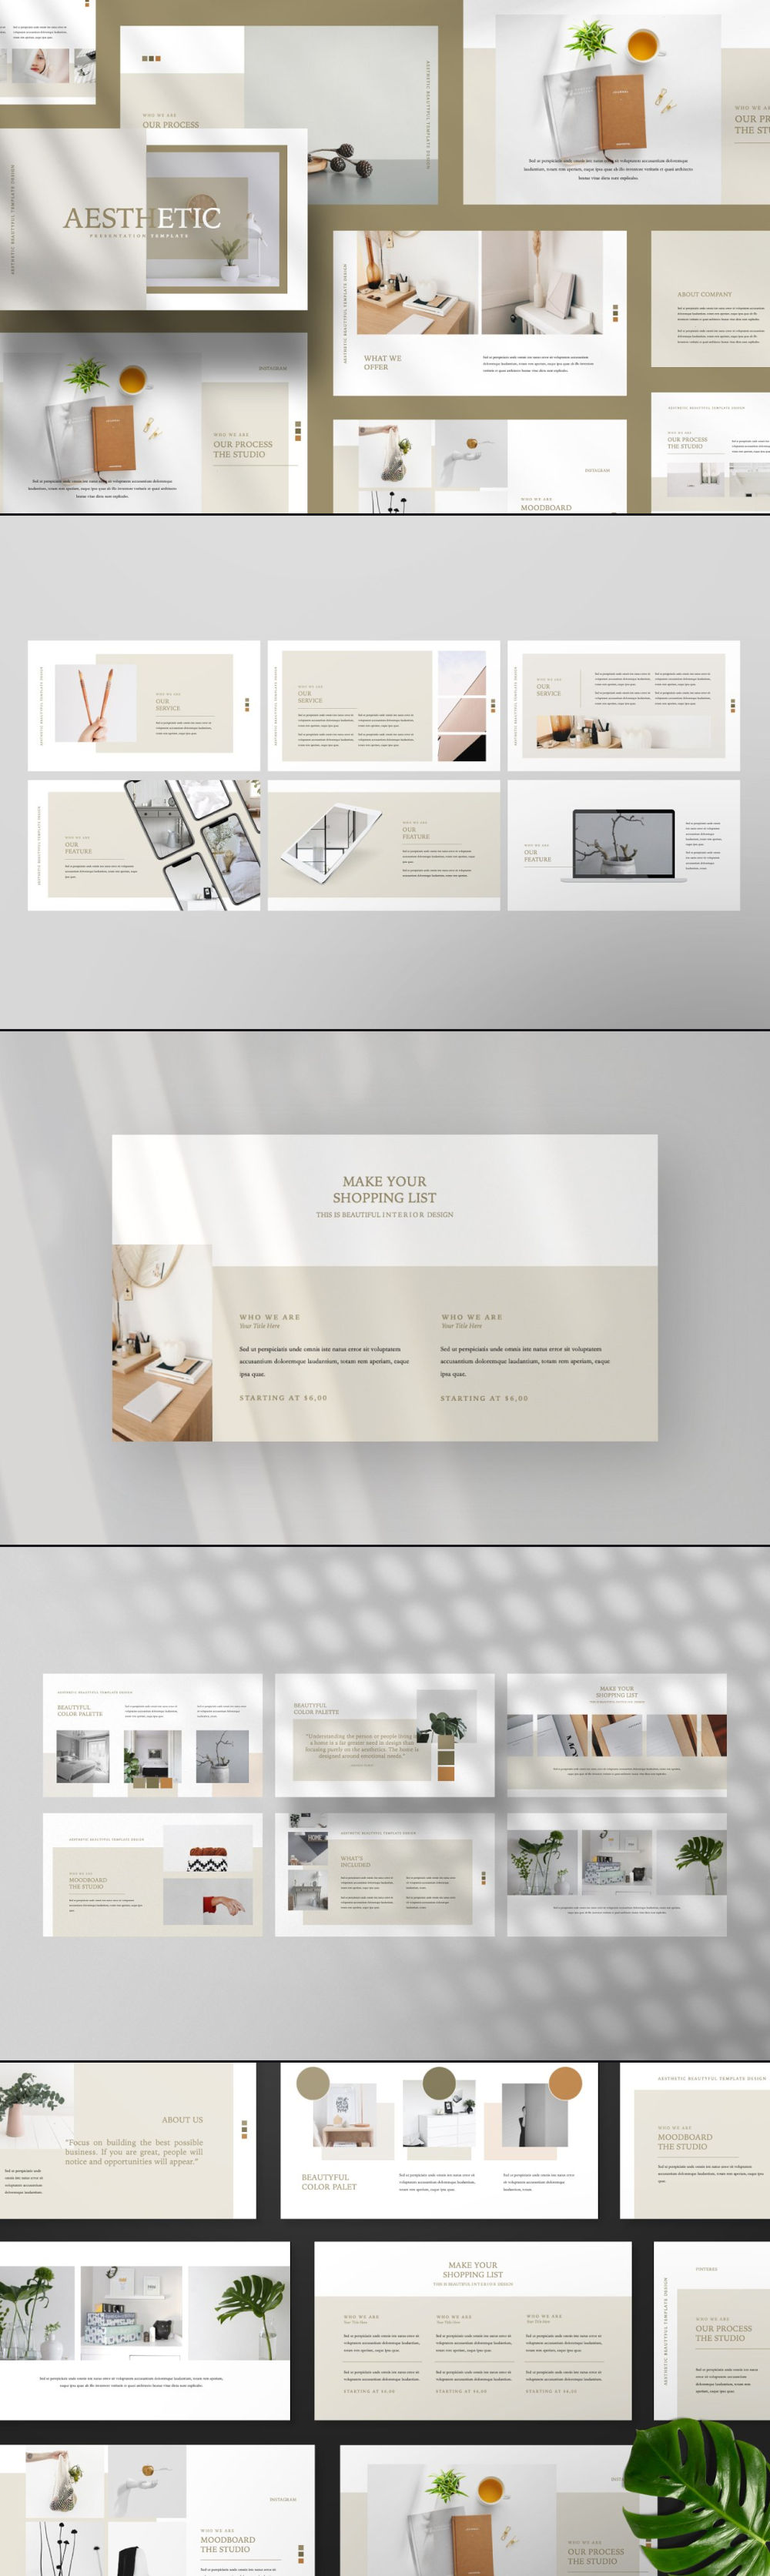 Free Aesthetic PowerPoint Template Preview